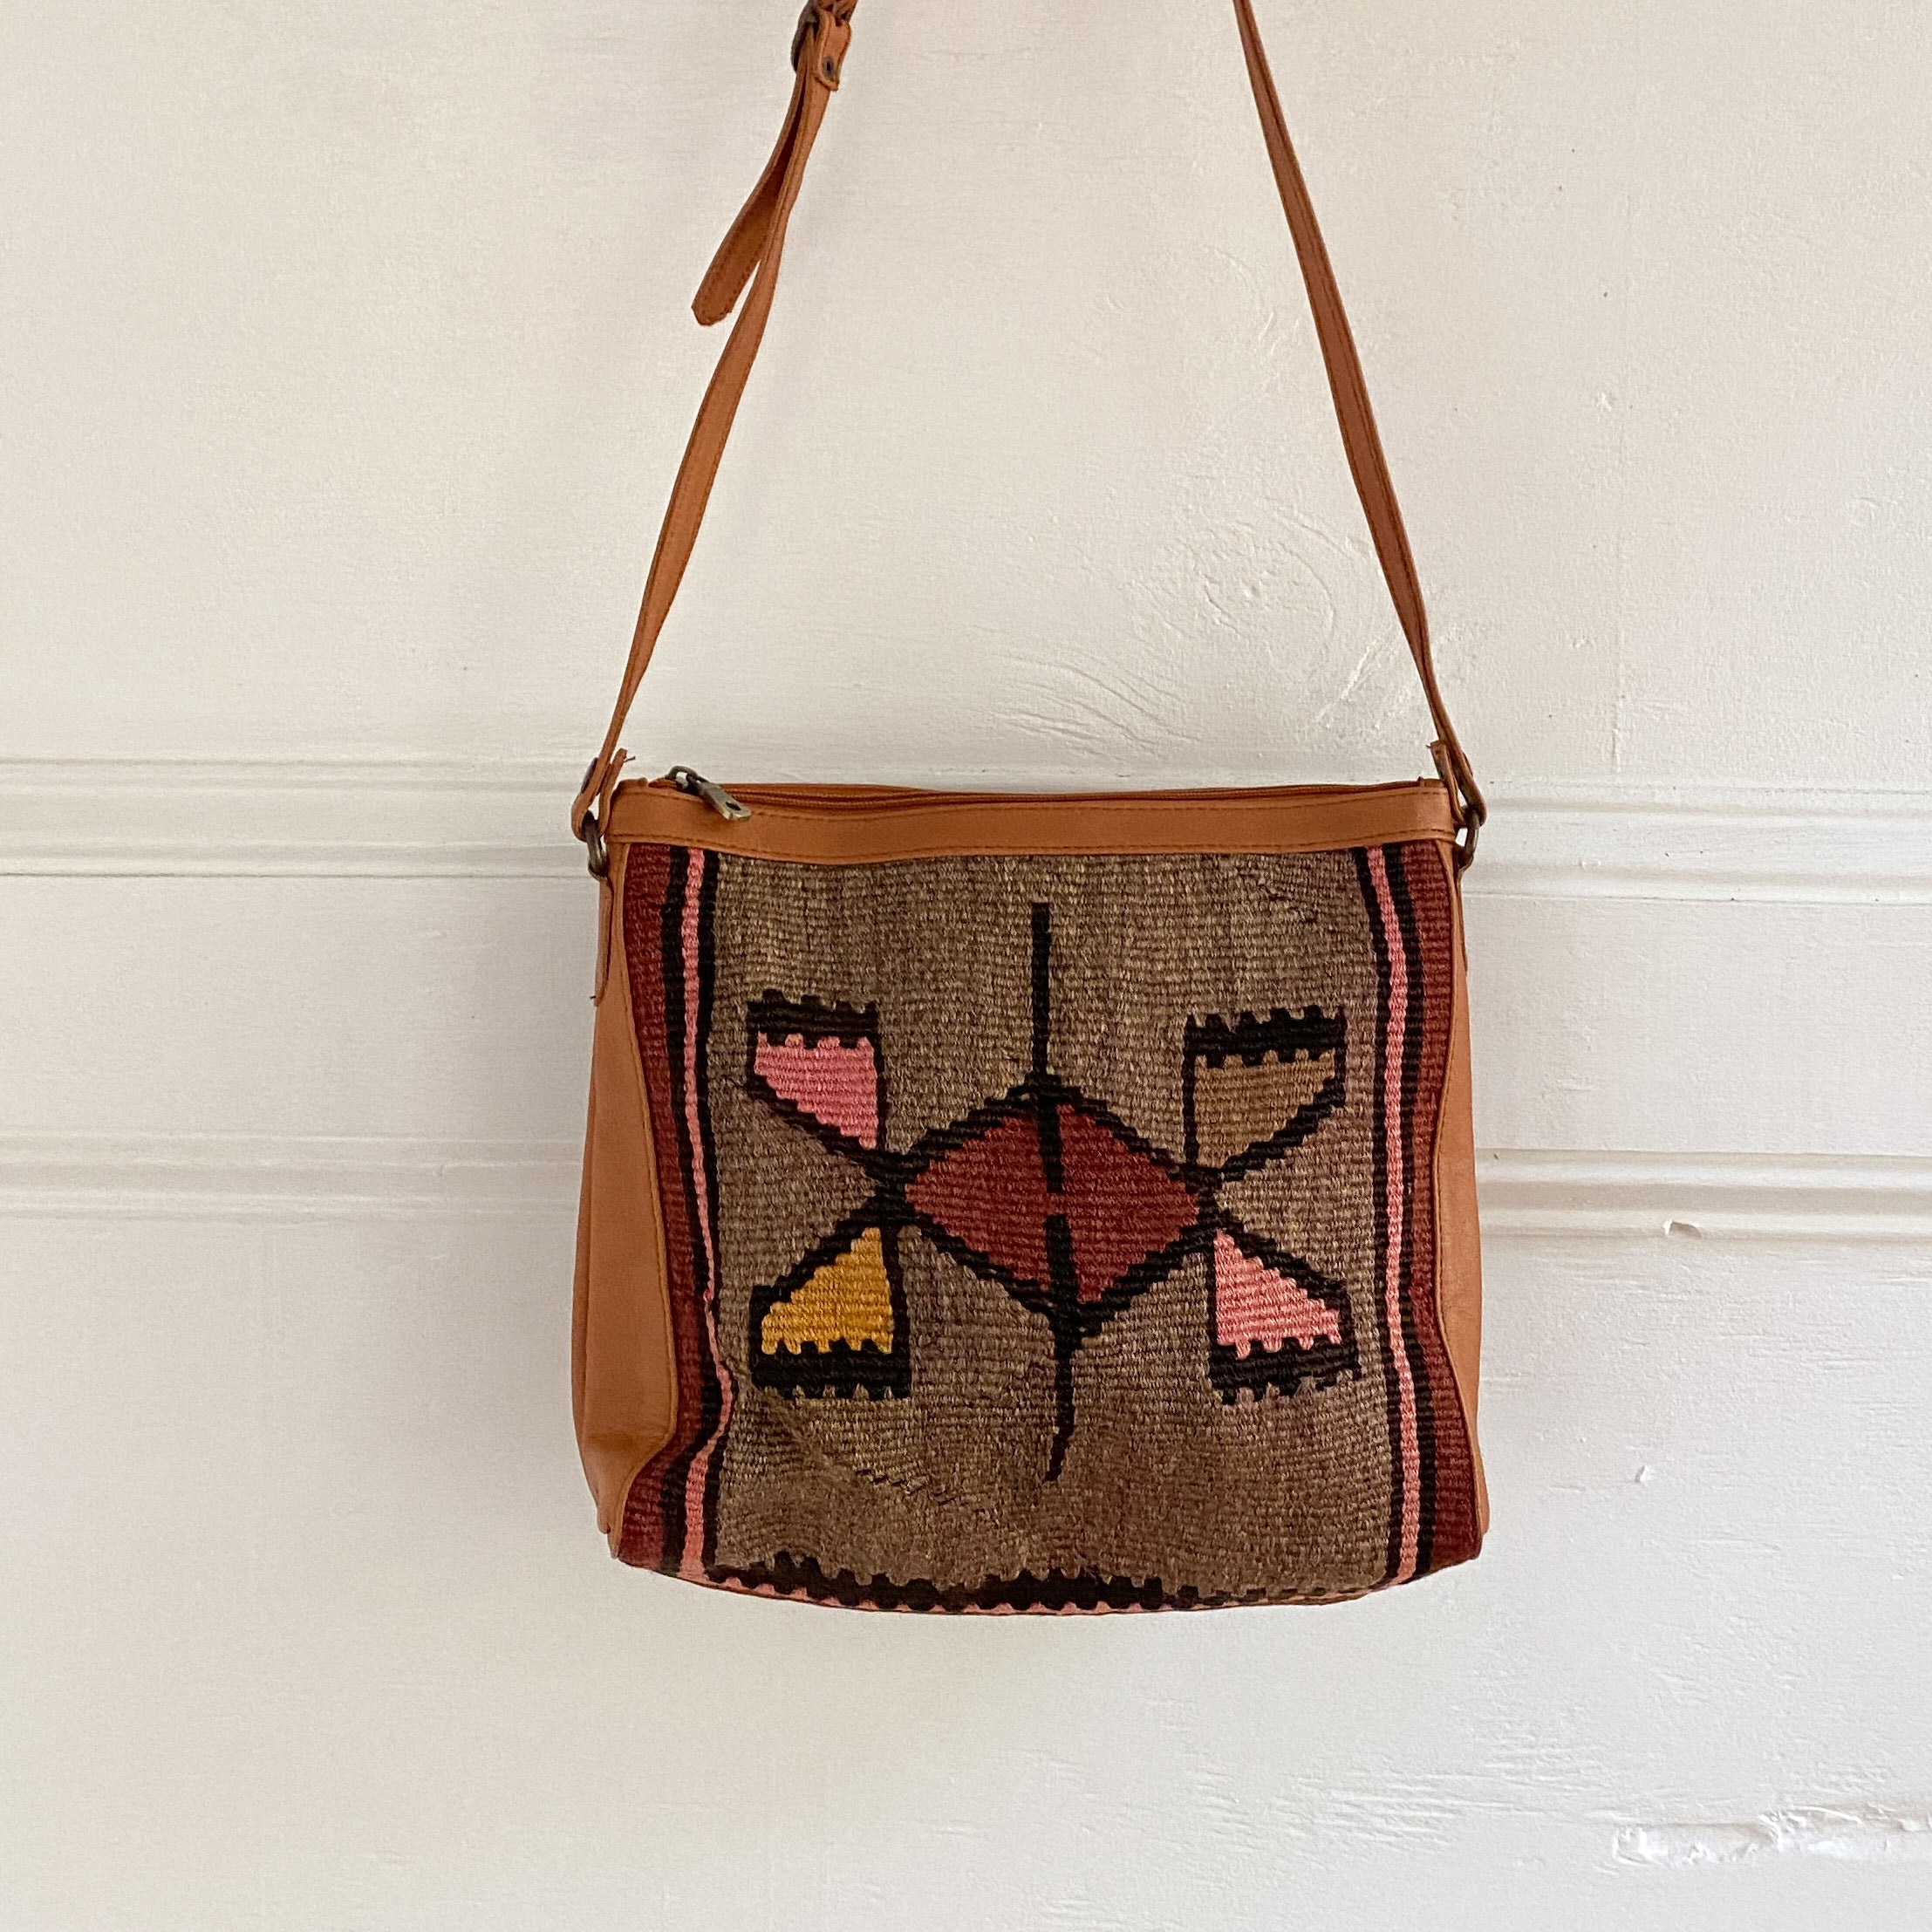 Kilim & Leather Crossbody / Pocketbook #37